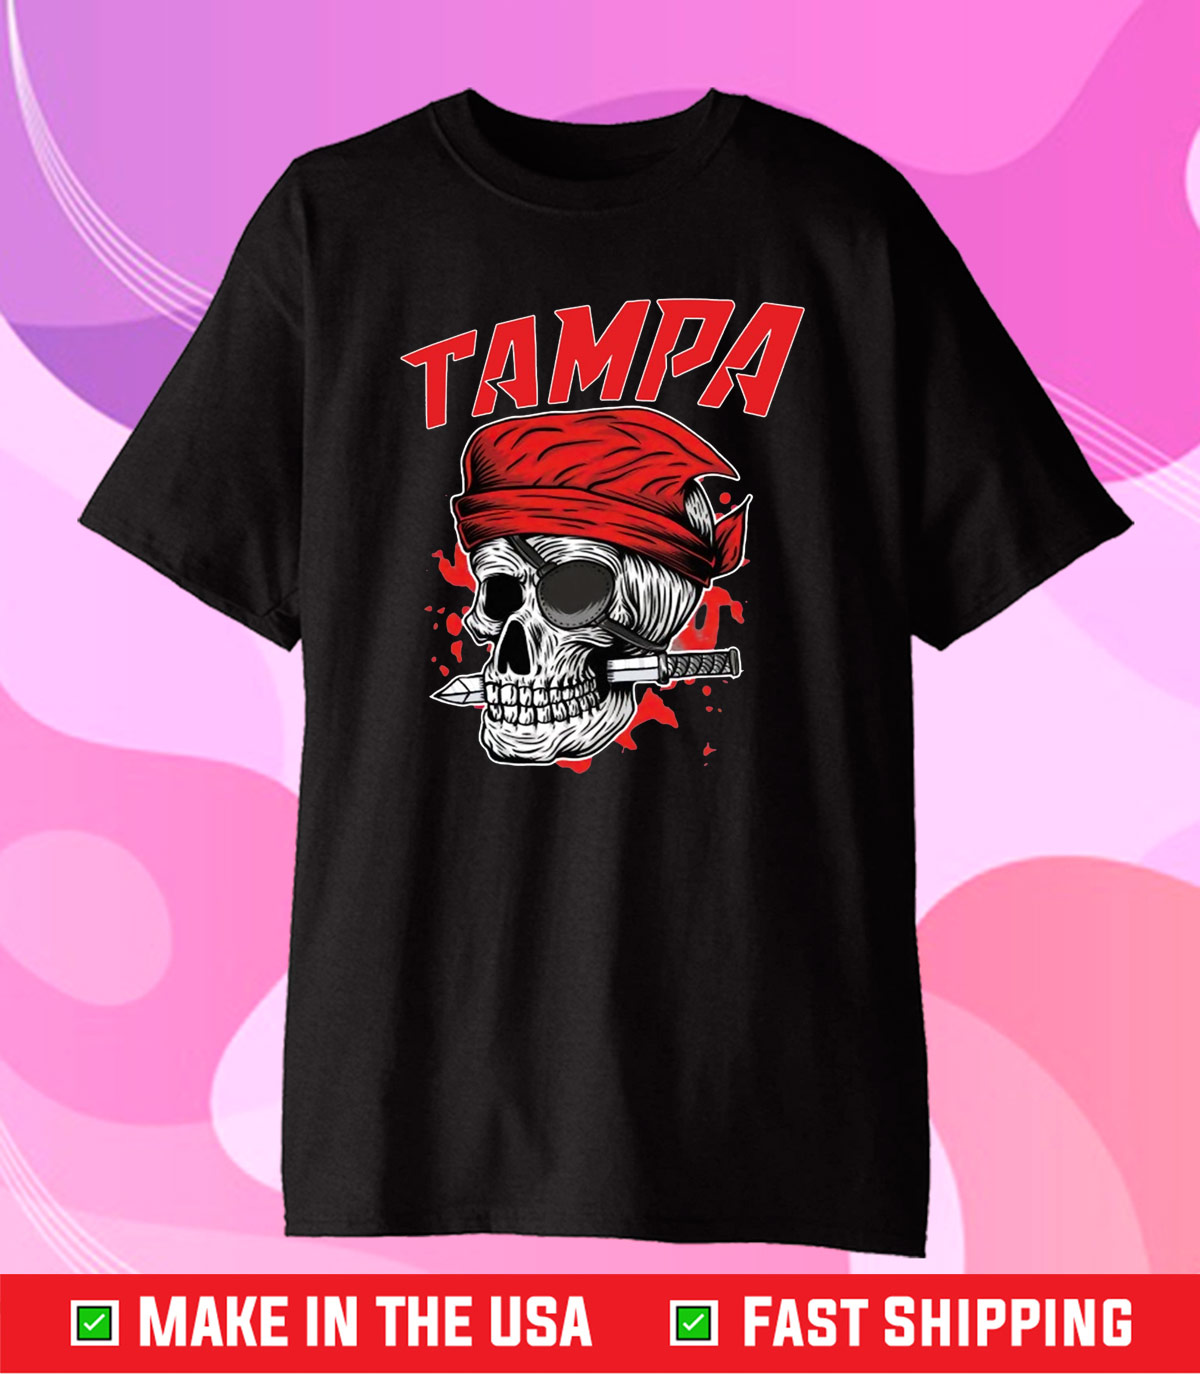 Tampa Bay Buccaneers T-Shirt,Tampa Bay Buccaneers NFL Champions Football Gift T-Shirt